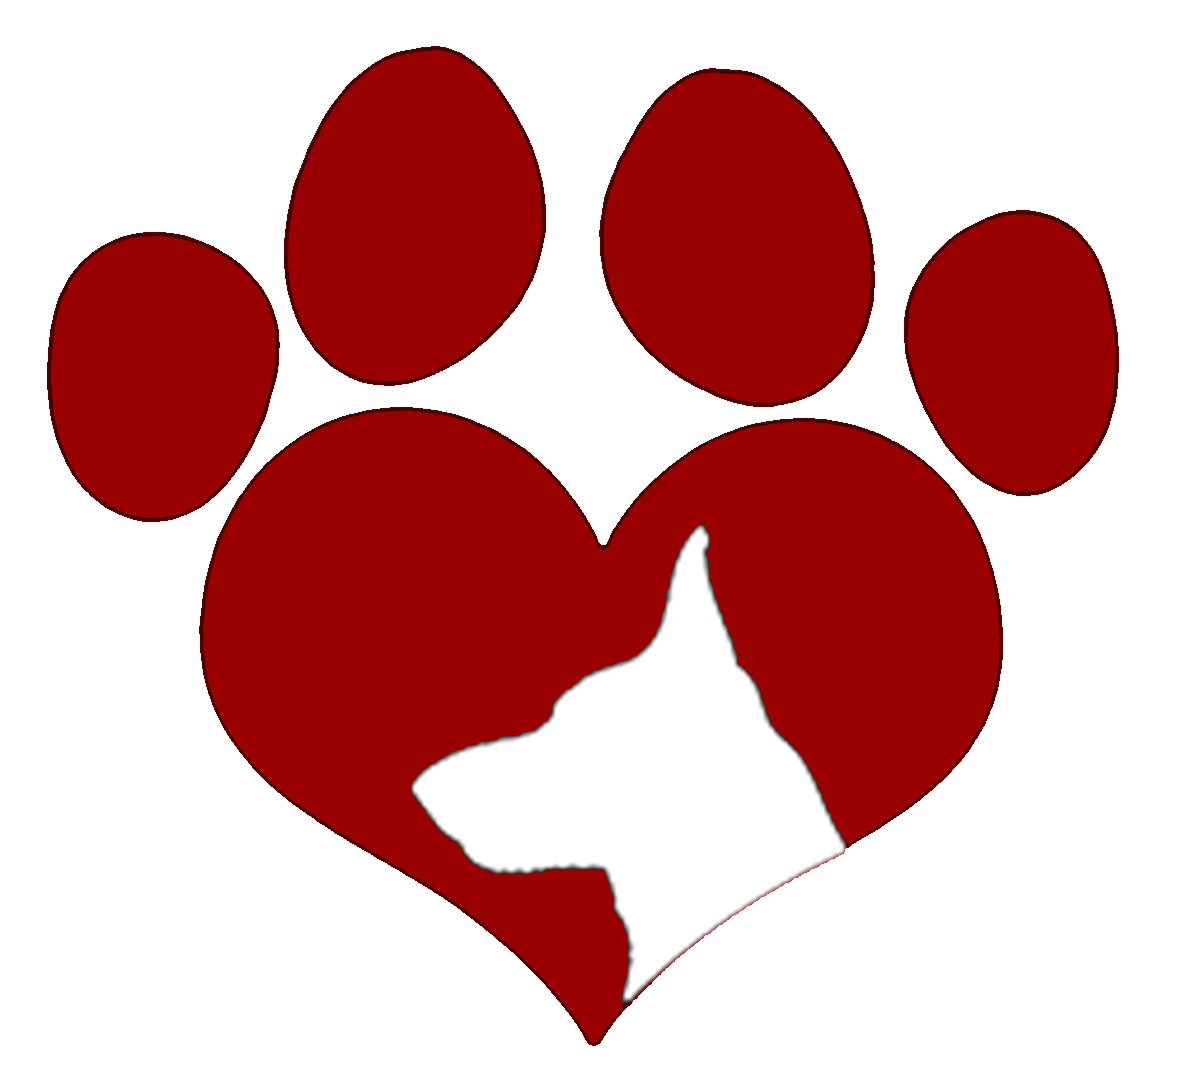 Pawsitive Love Foundation - Founded by Steve Kotowske and his family to help our community and beyond.  Our mission is to place Service Dogs with Veterans and Children that are properly trained for PTSD, TBi, Mobility Assist, Autism Support, Seizure Response, and Diabetes Alert.  Pawsitive Love Foundation is a 501c(3) Charitable Organization.  Your donations are tax deductible, and go directly to the procurement, care, and training of the dogs and their people.